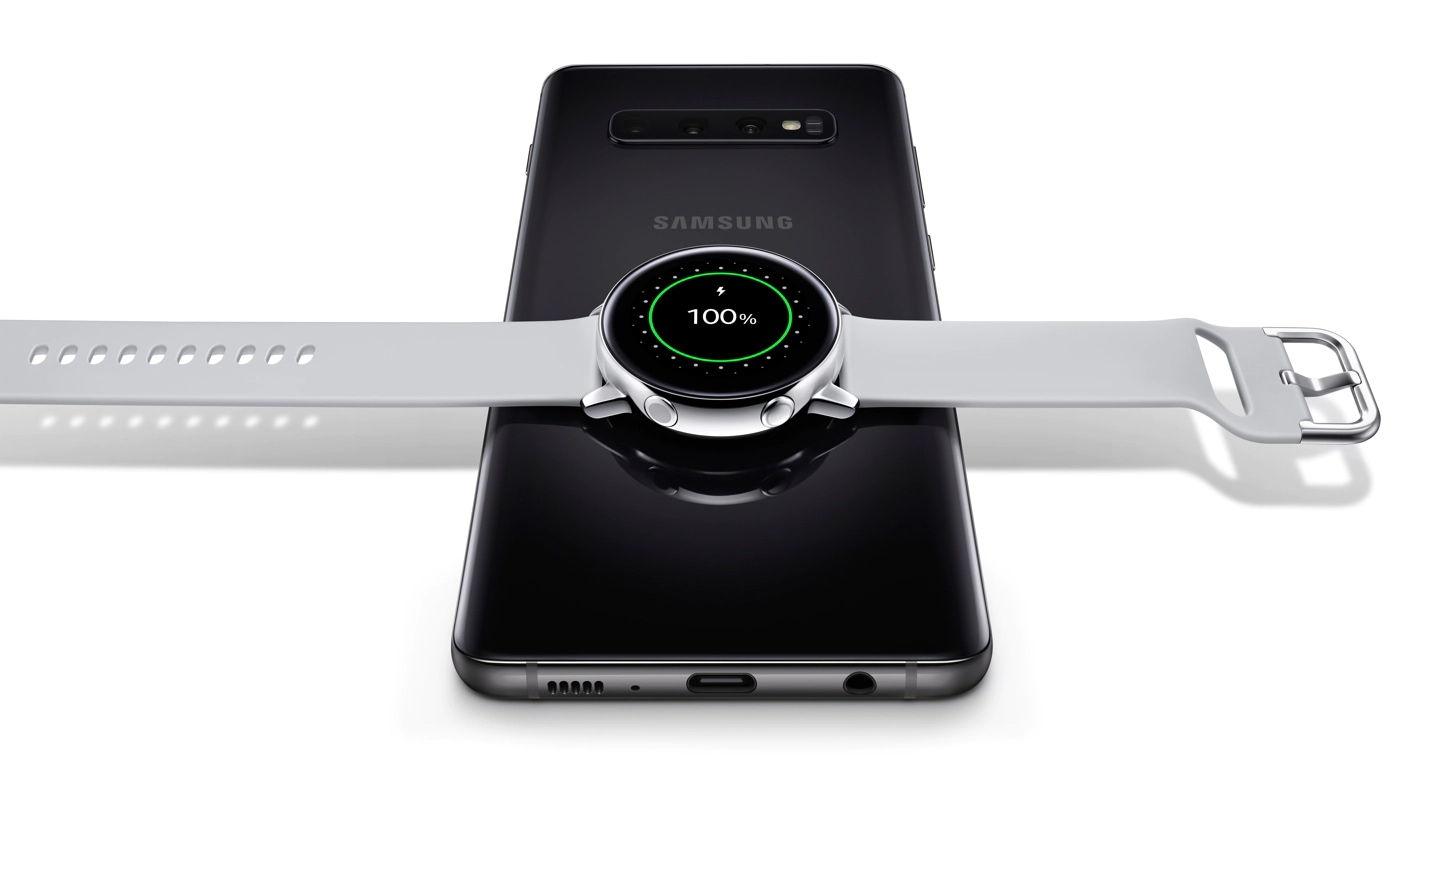 Galaxy Watch Active is placed horizontally on the wireless charger.